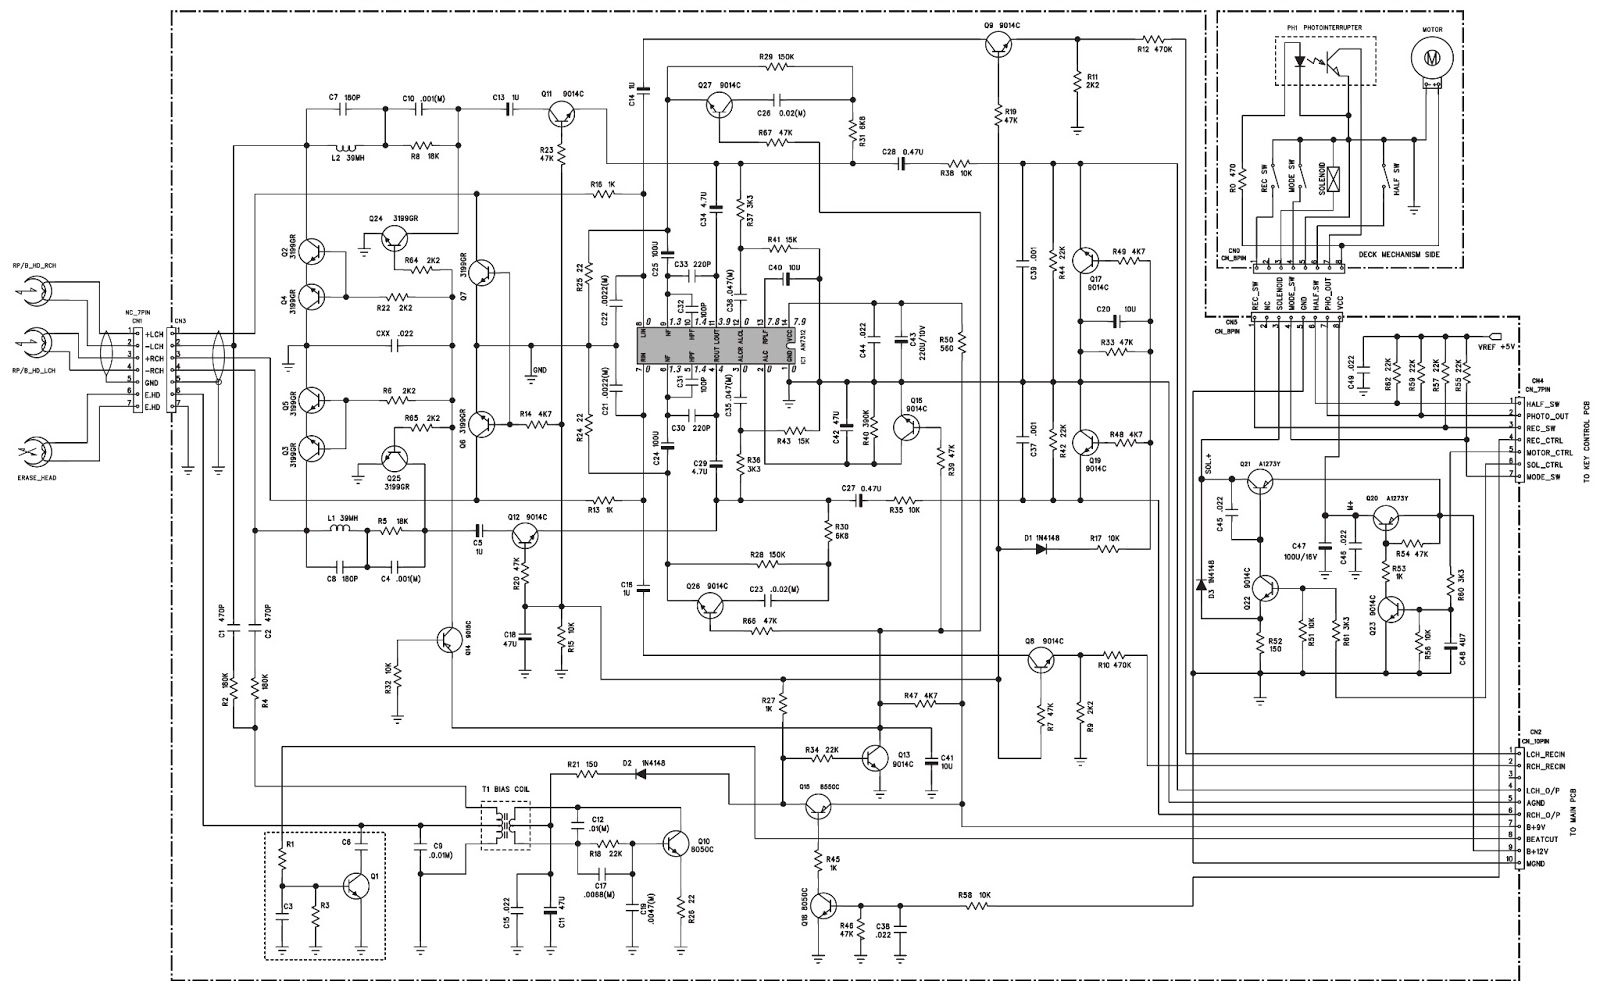 yamaha+motor+and+head+pre.bmp yamaha _ thomson cs 100 cs 105 schematic diagram [circuit yamaha schematic diagram at nearapp.co